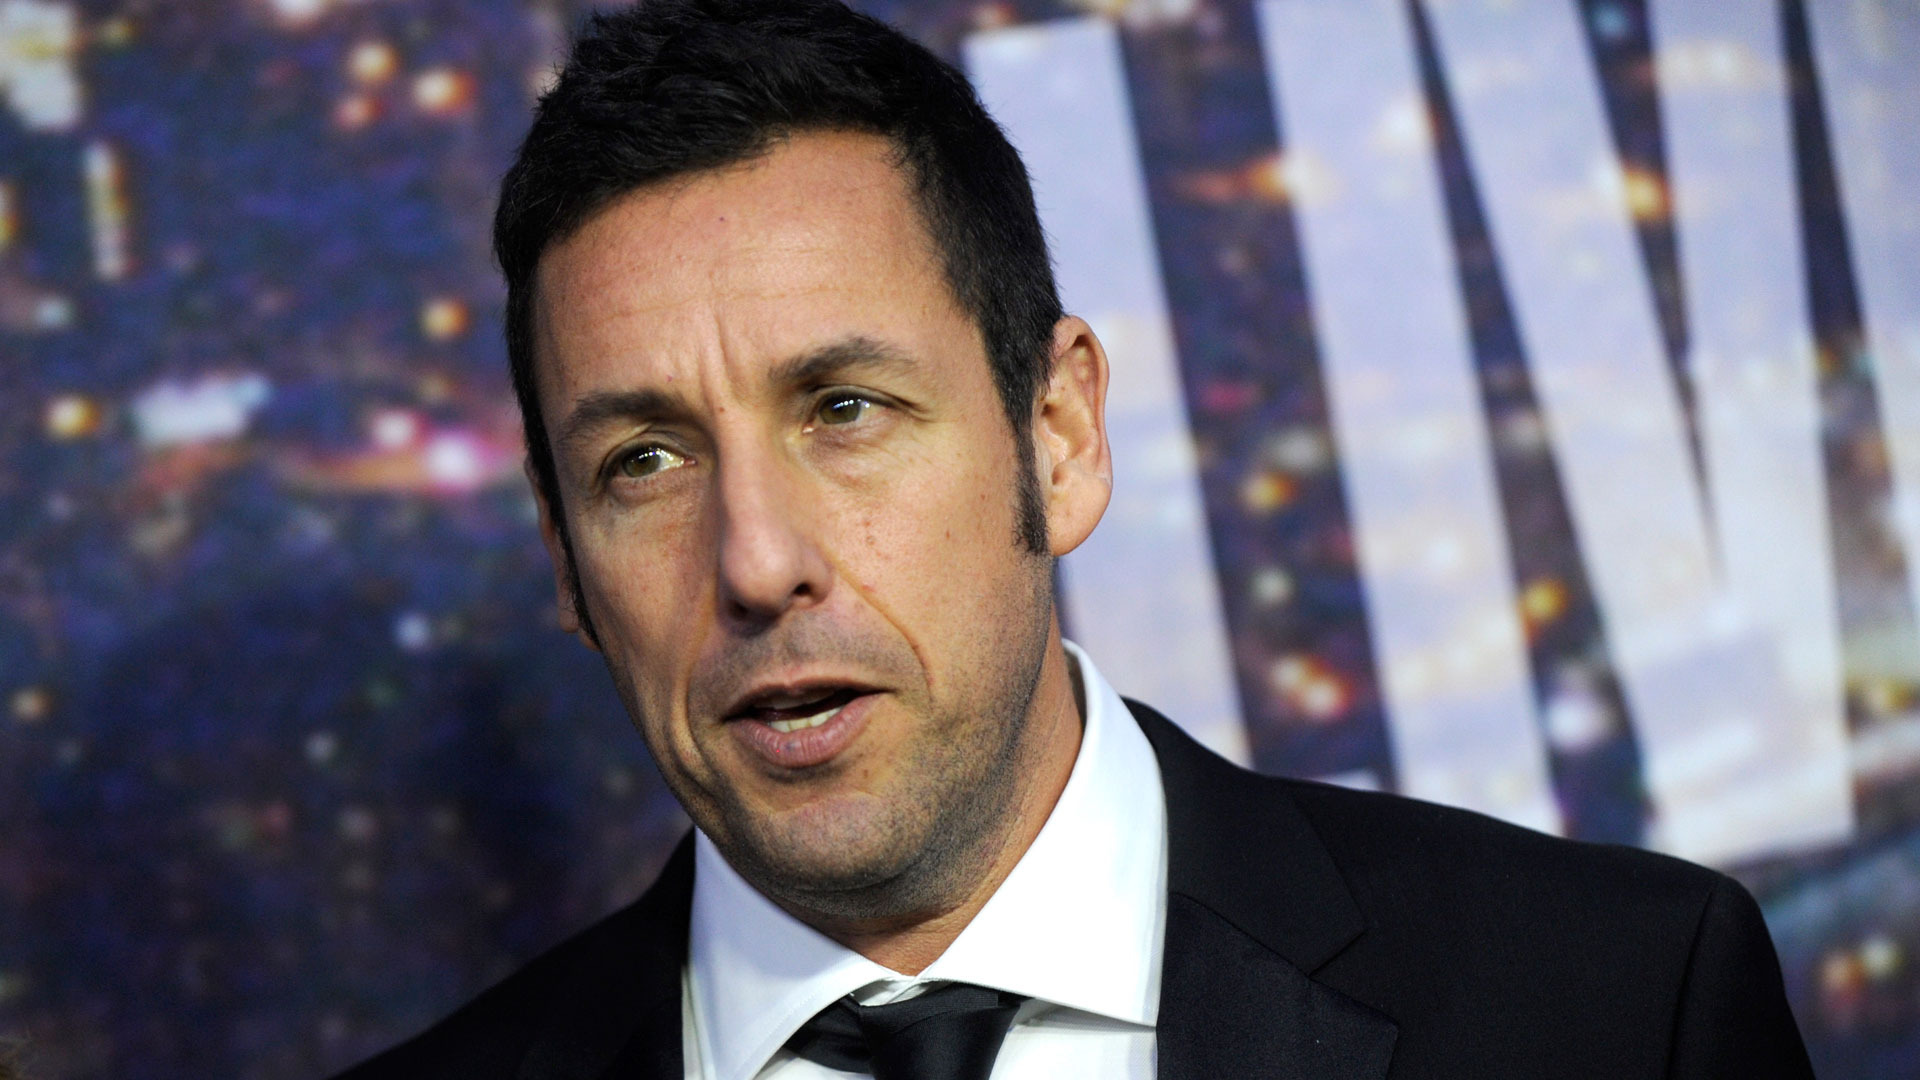 Anime Girl Wallpaper With Names Adam Sandler Wallpapers Pictures Images